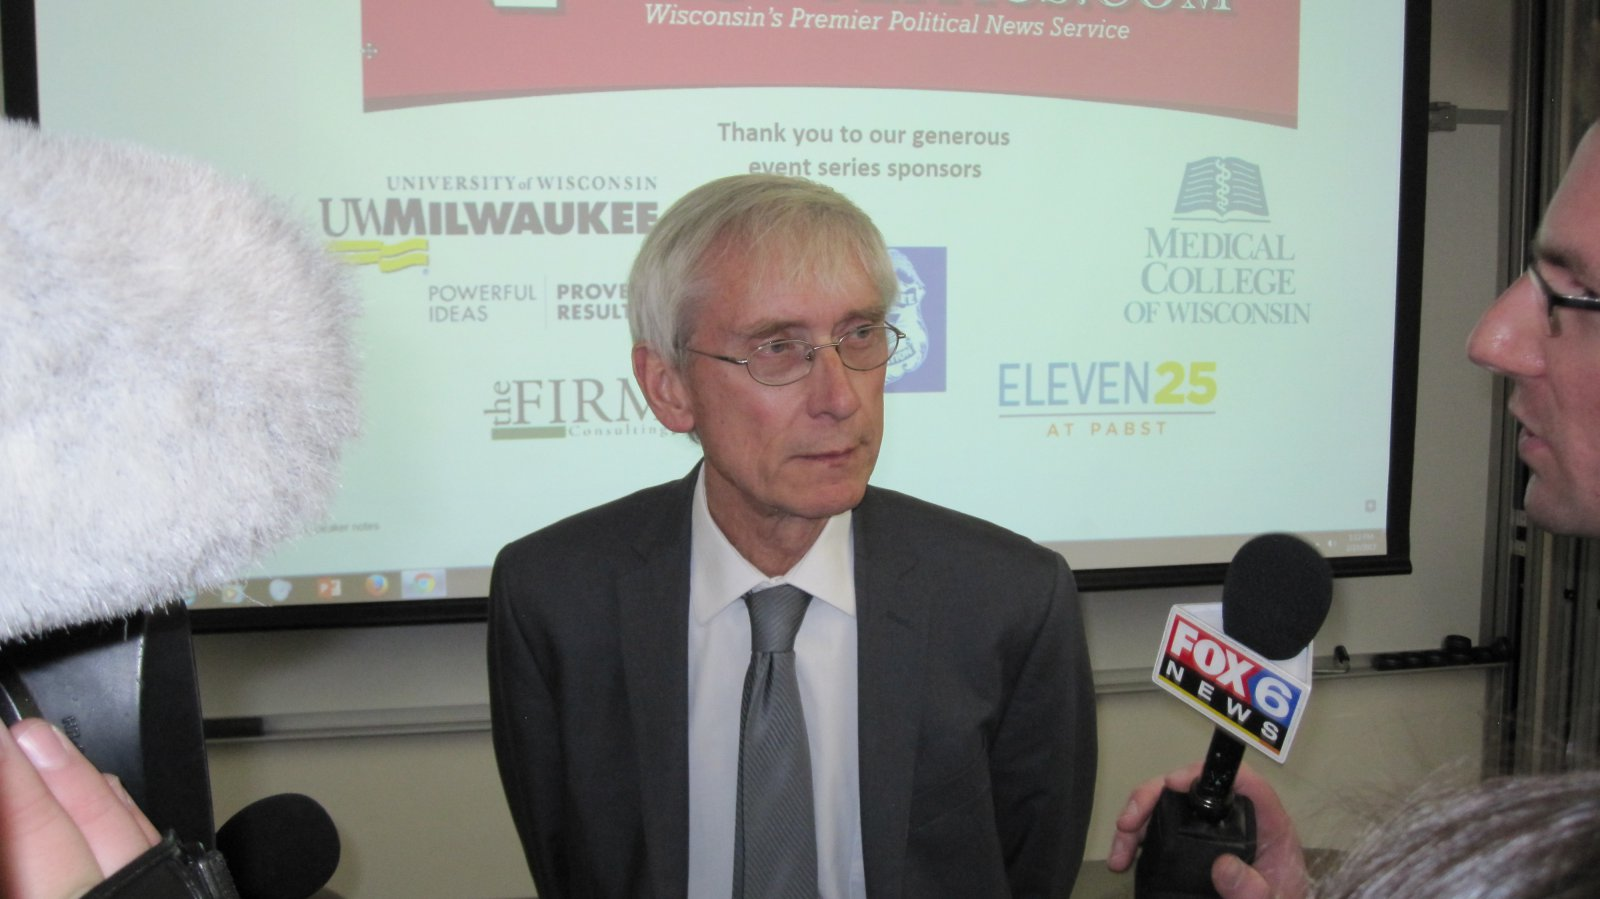 Tony Evers. Photo by Michael Horne.